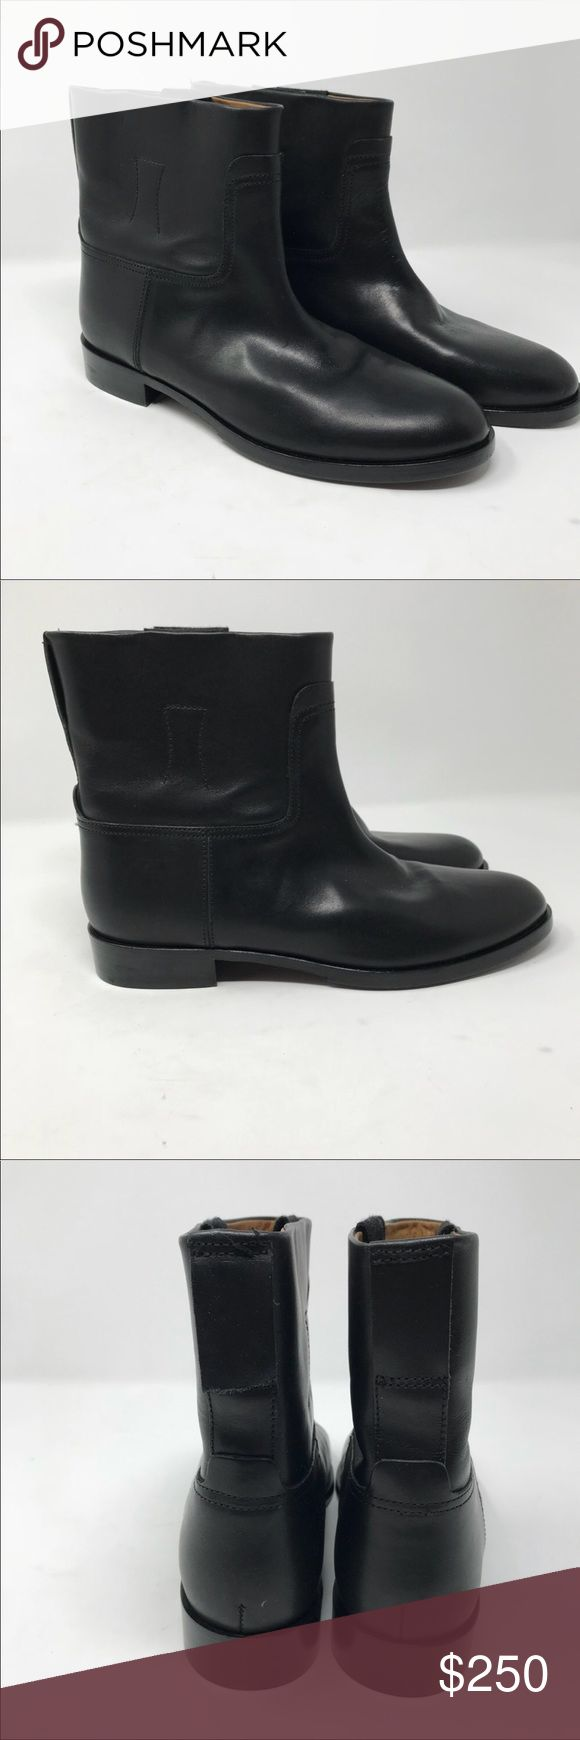 """Rag and Bone Holly black Moto boots New with defect. The back pull strap is ripped off need a new stitching . Moto style ankle boots. Clean, modern minimalism defines a pull-on ankle boot shaped from rich Italian leather. 1"""" heel ,5 1/2"""" boot shaft, almond toe,  - Black calf leather upper, leather lining and sole - By rag & bone; made in Italy Comes with original dust bag size 39 best fit for size US 8 rag & bone Shoes Combat & Moto Boots"""